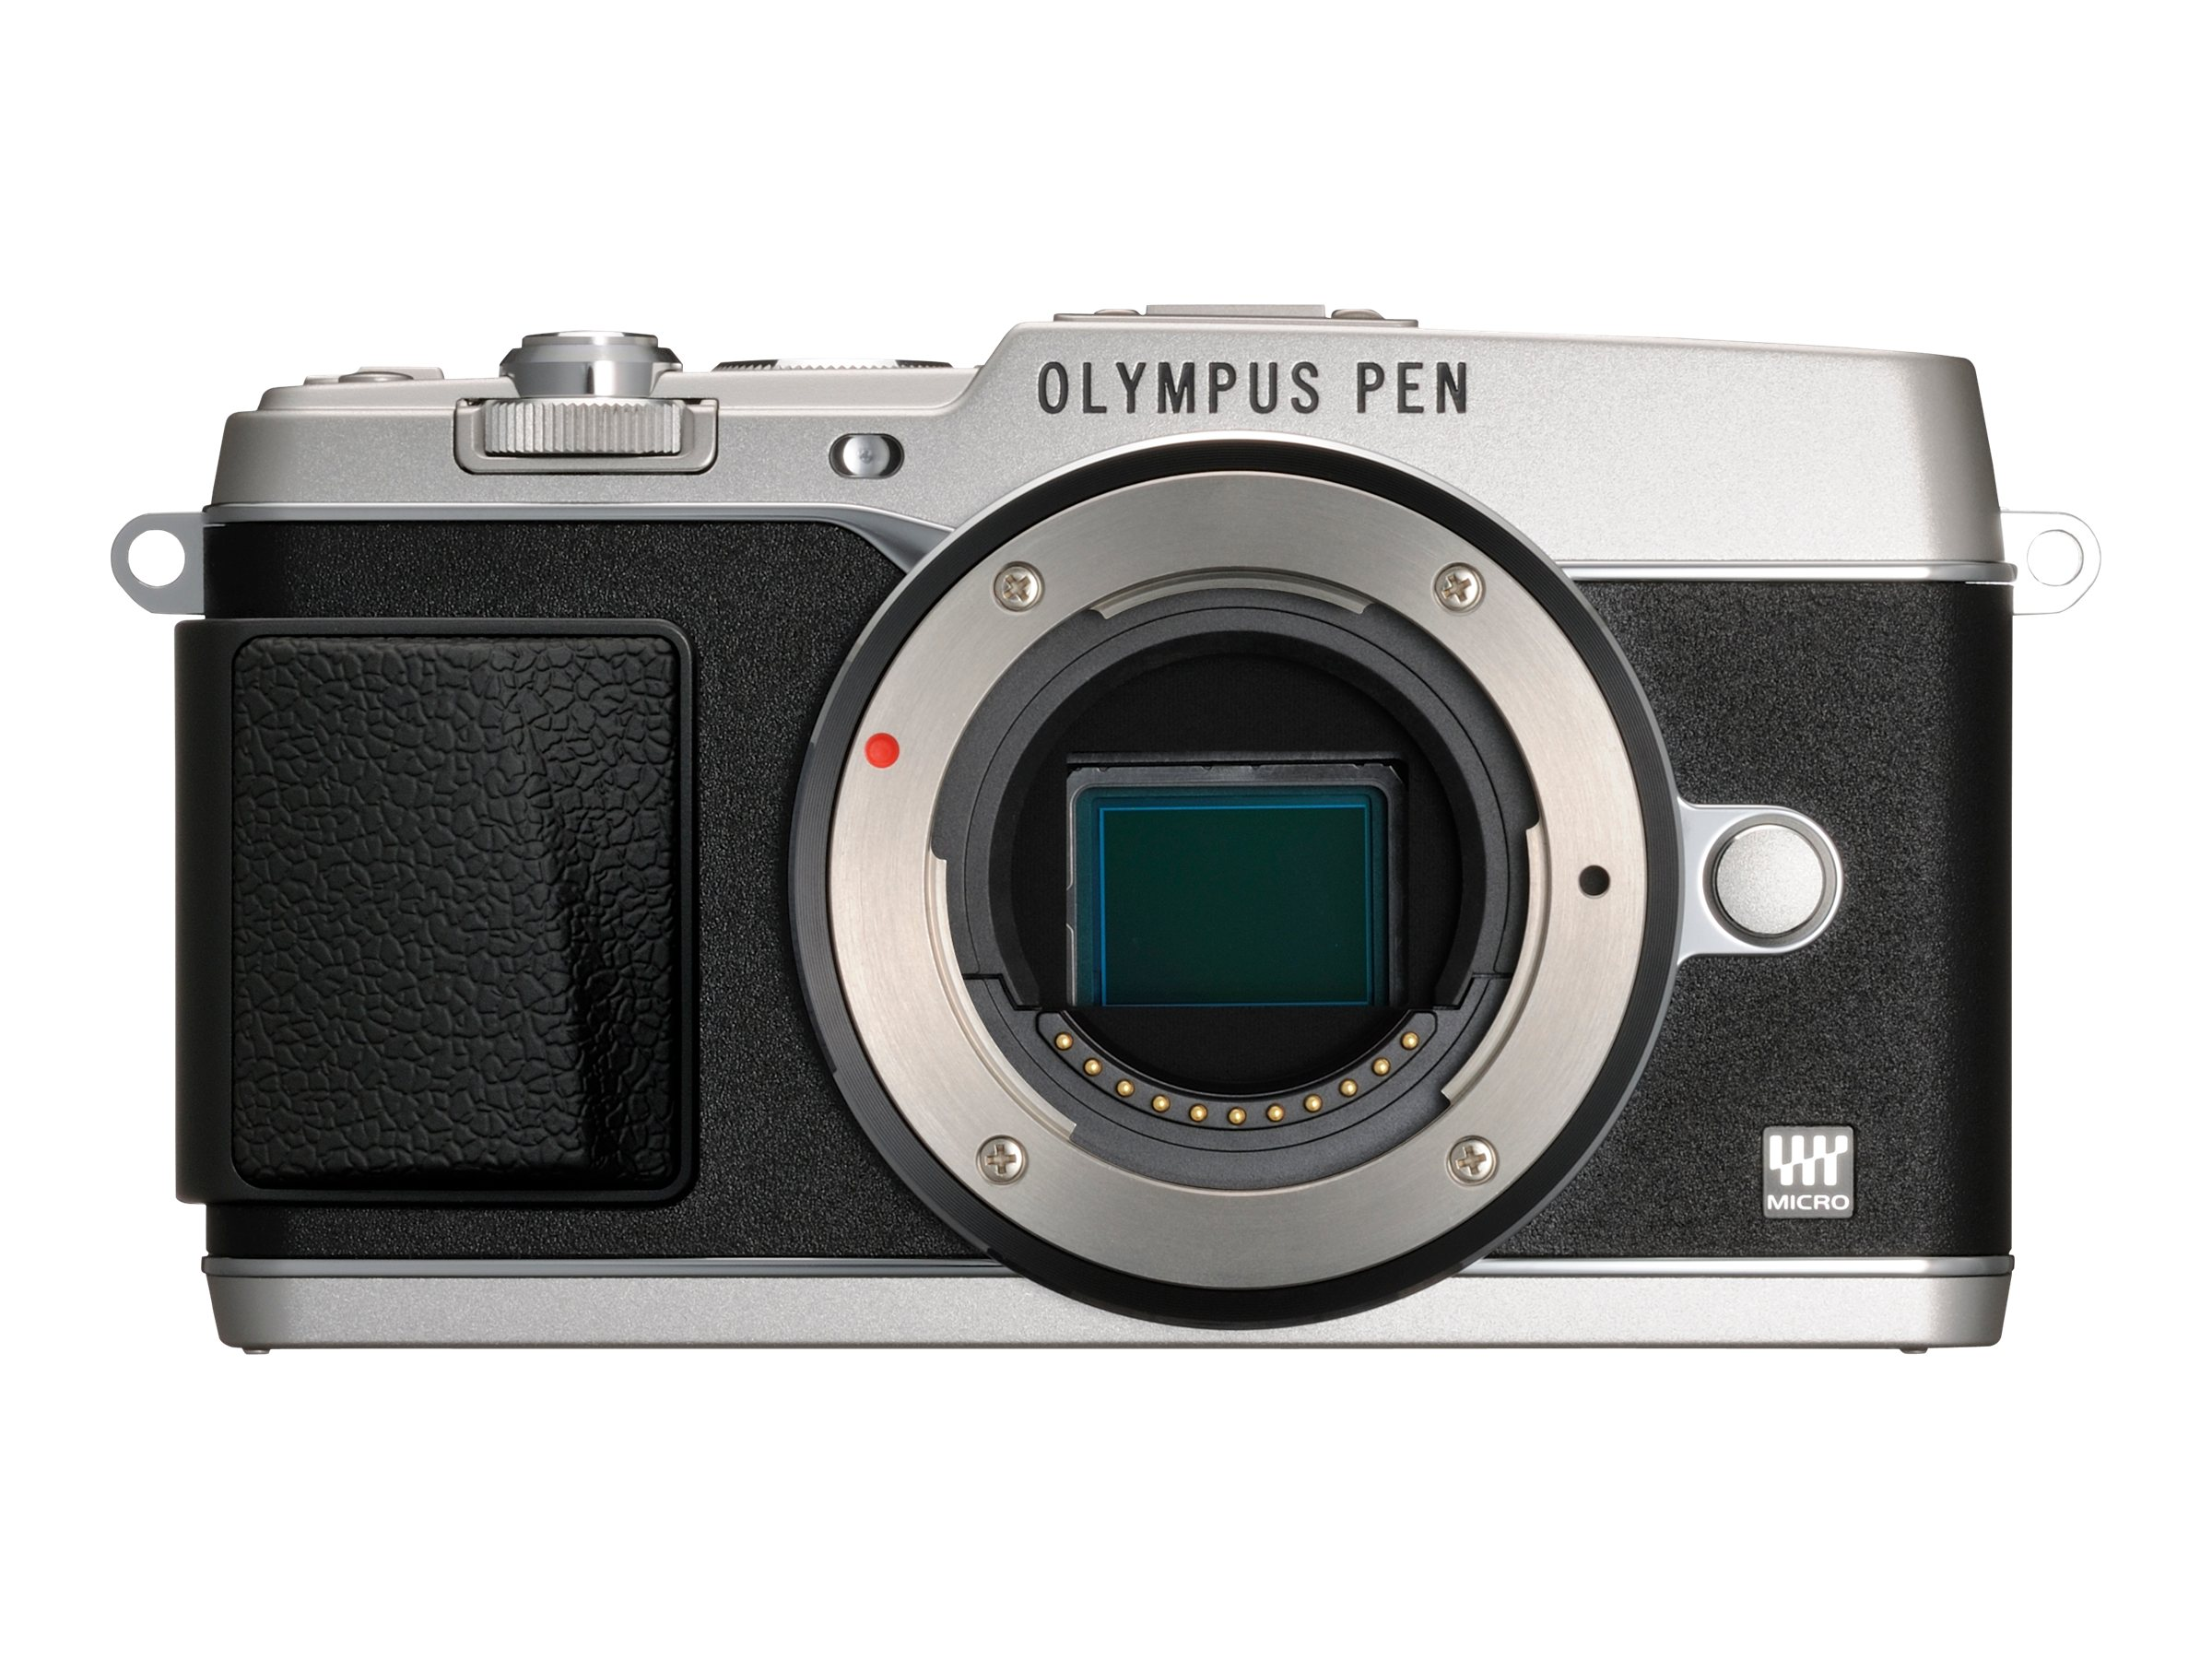 Olympus E-P5 PEN Mirrorless Digital Camera with 17mm f 1.8 Lens and VF-4 Viewfinder, Silver, V204053SU000, 15751915, Cameras - Digital